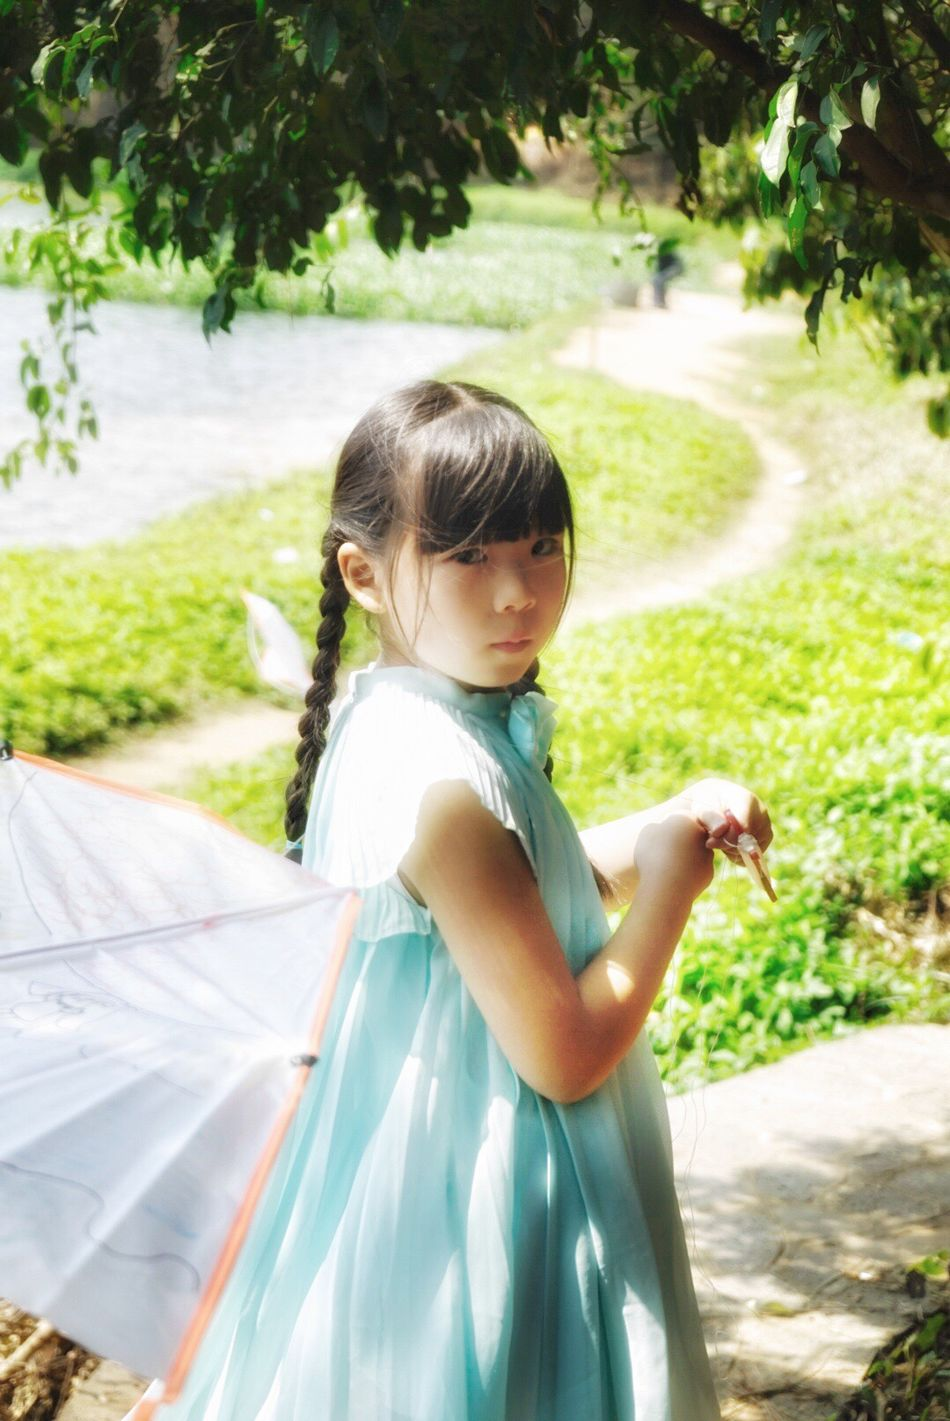 My little fairies❤️ Child One Girl Only Childhood One Person Children Only Side View Outdoors Girls Nature Day Portrait Standing Looking Down Tree People Smiling Flying A Kite Spring Nature Countryside